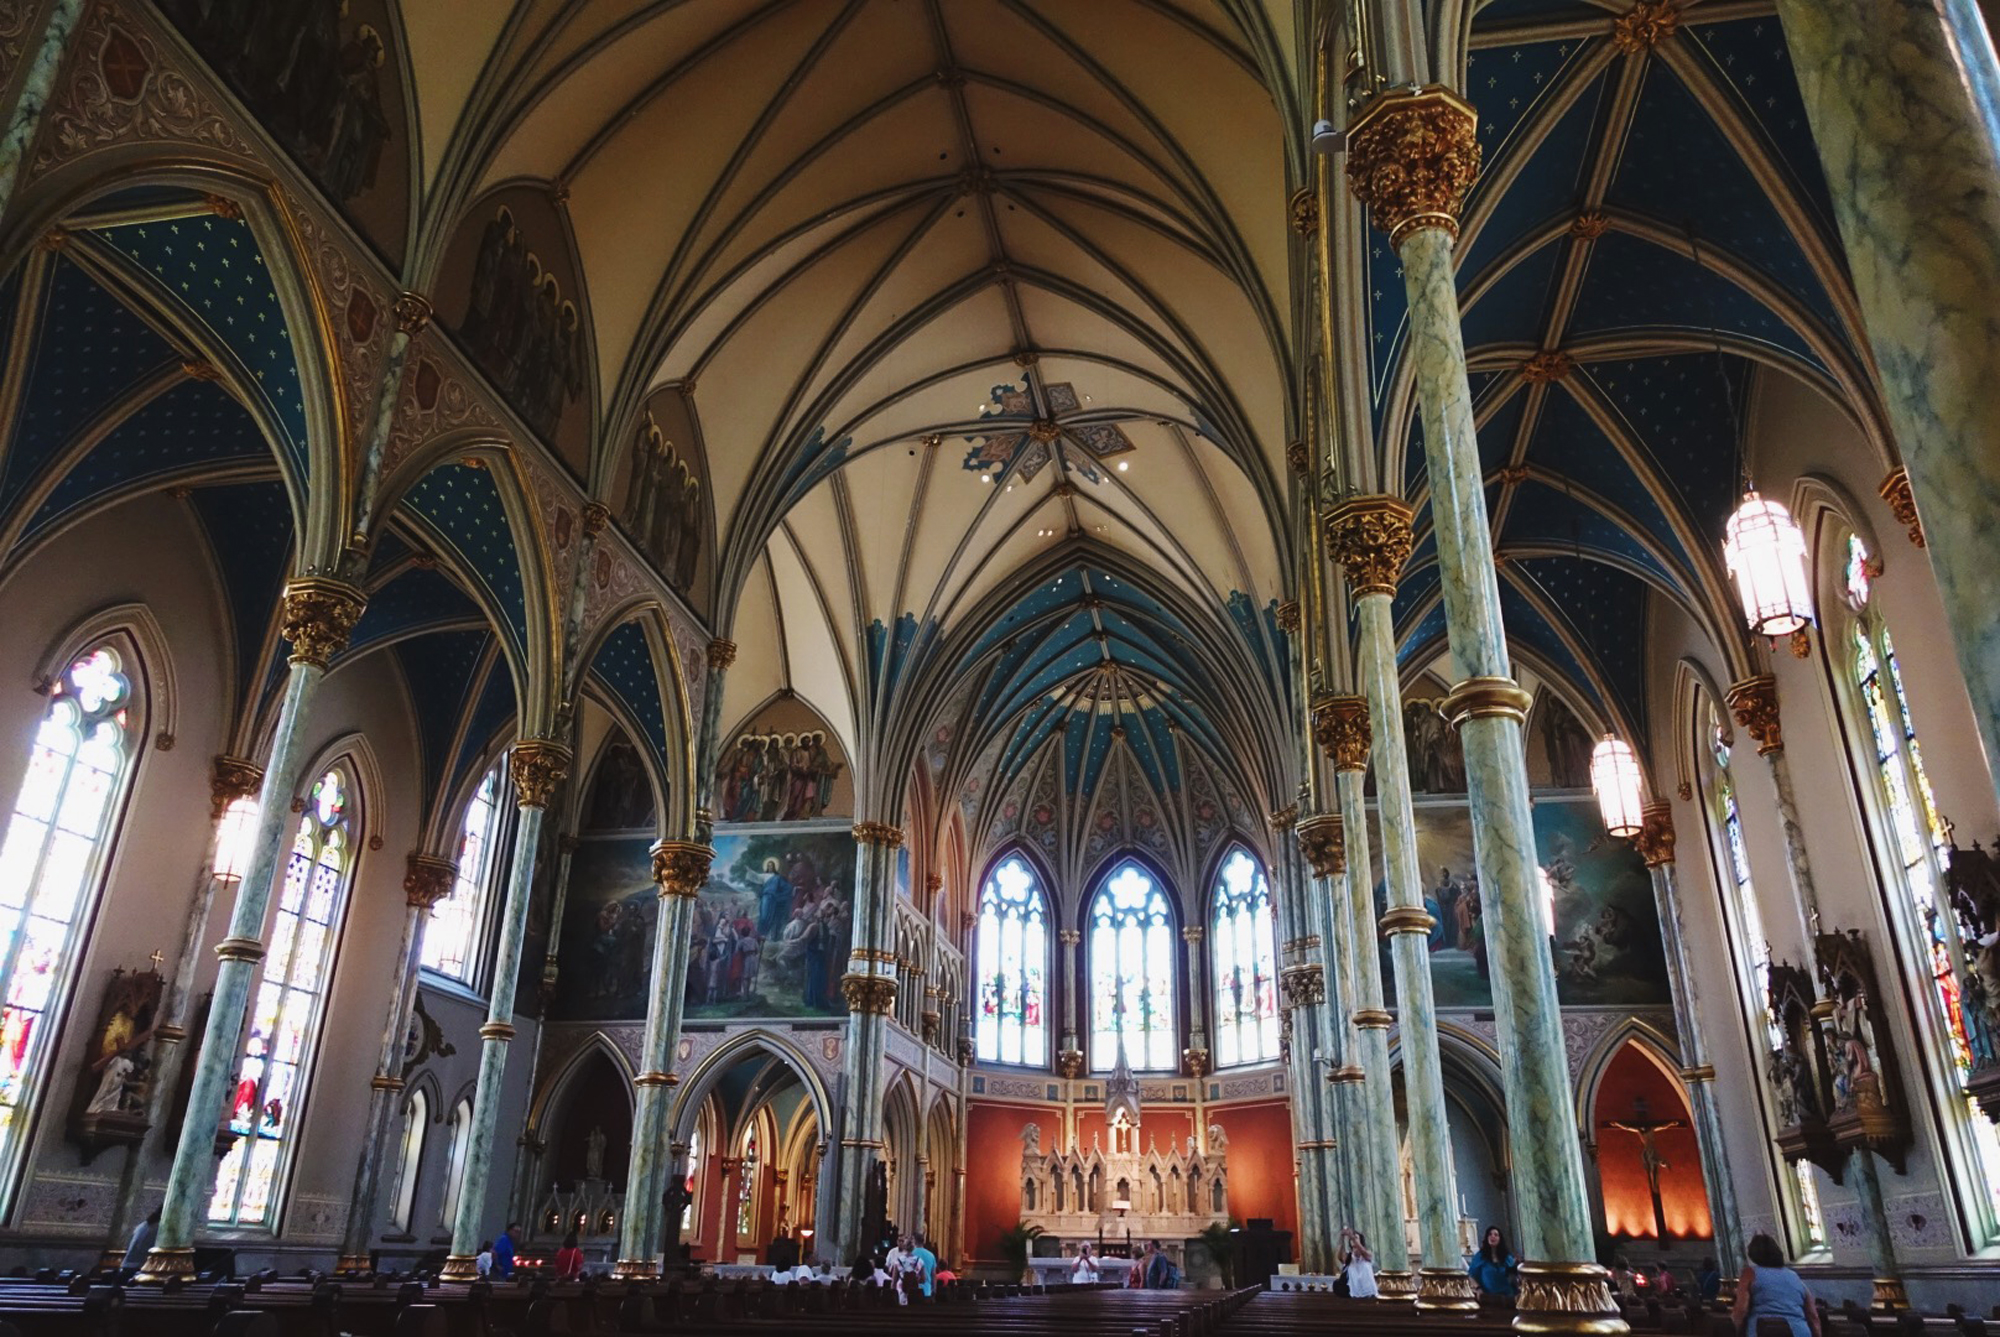 The interior of The Cathedral of Saint John the Baptist.